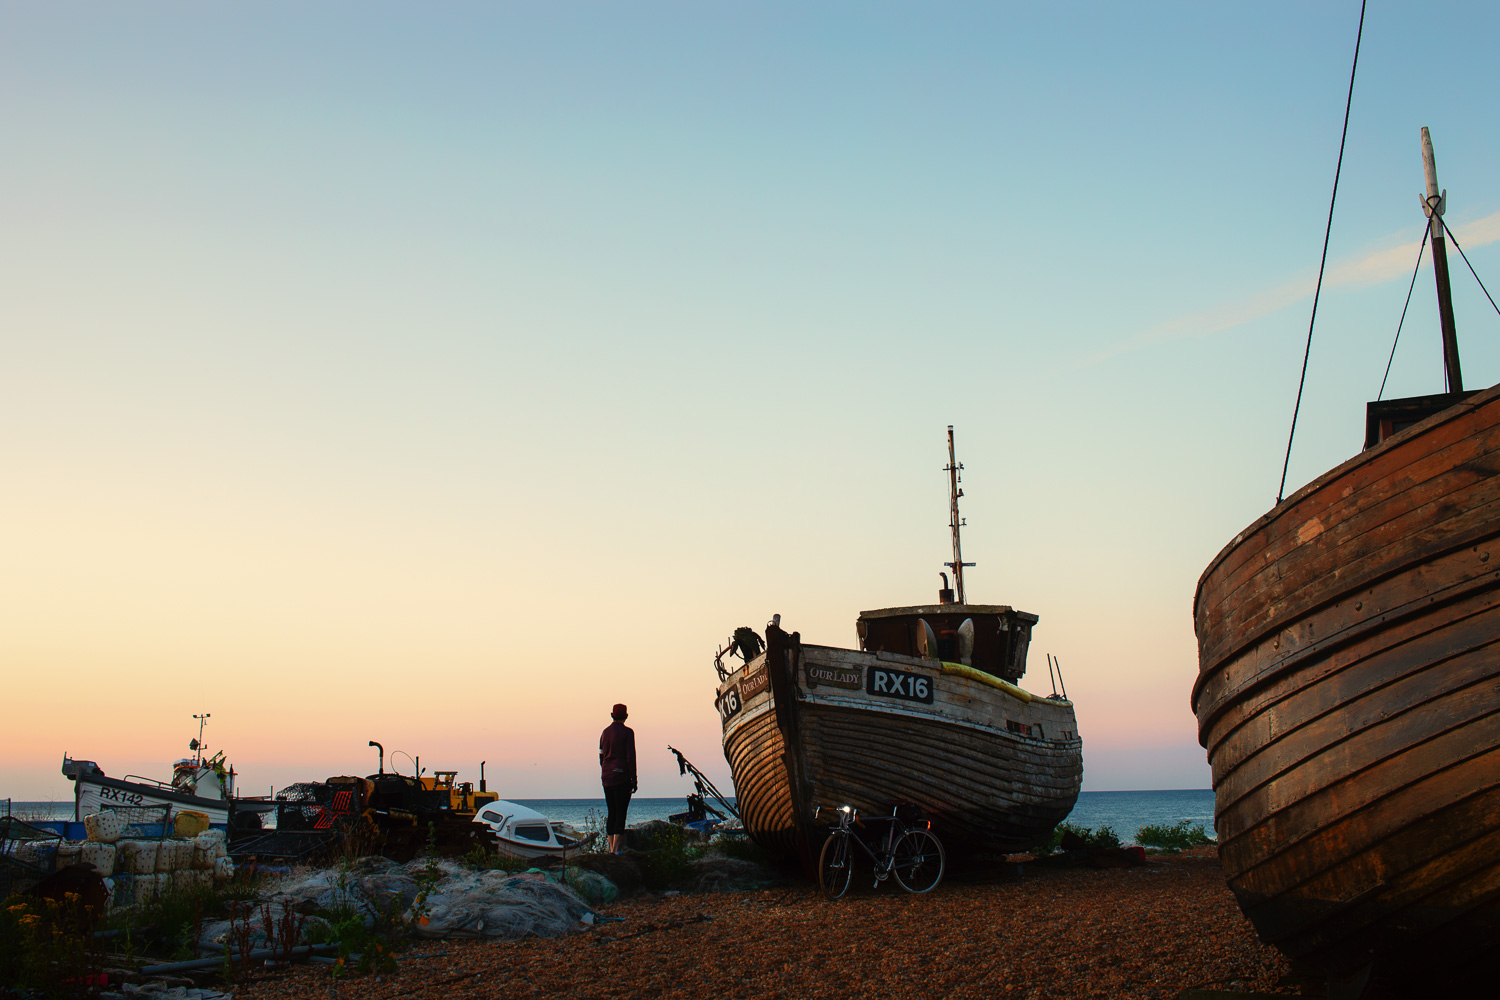 Man with bicycle beside old fishing lugger at dawn